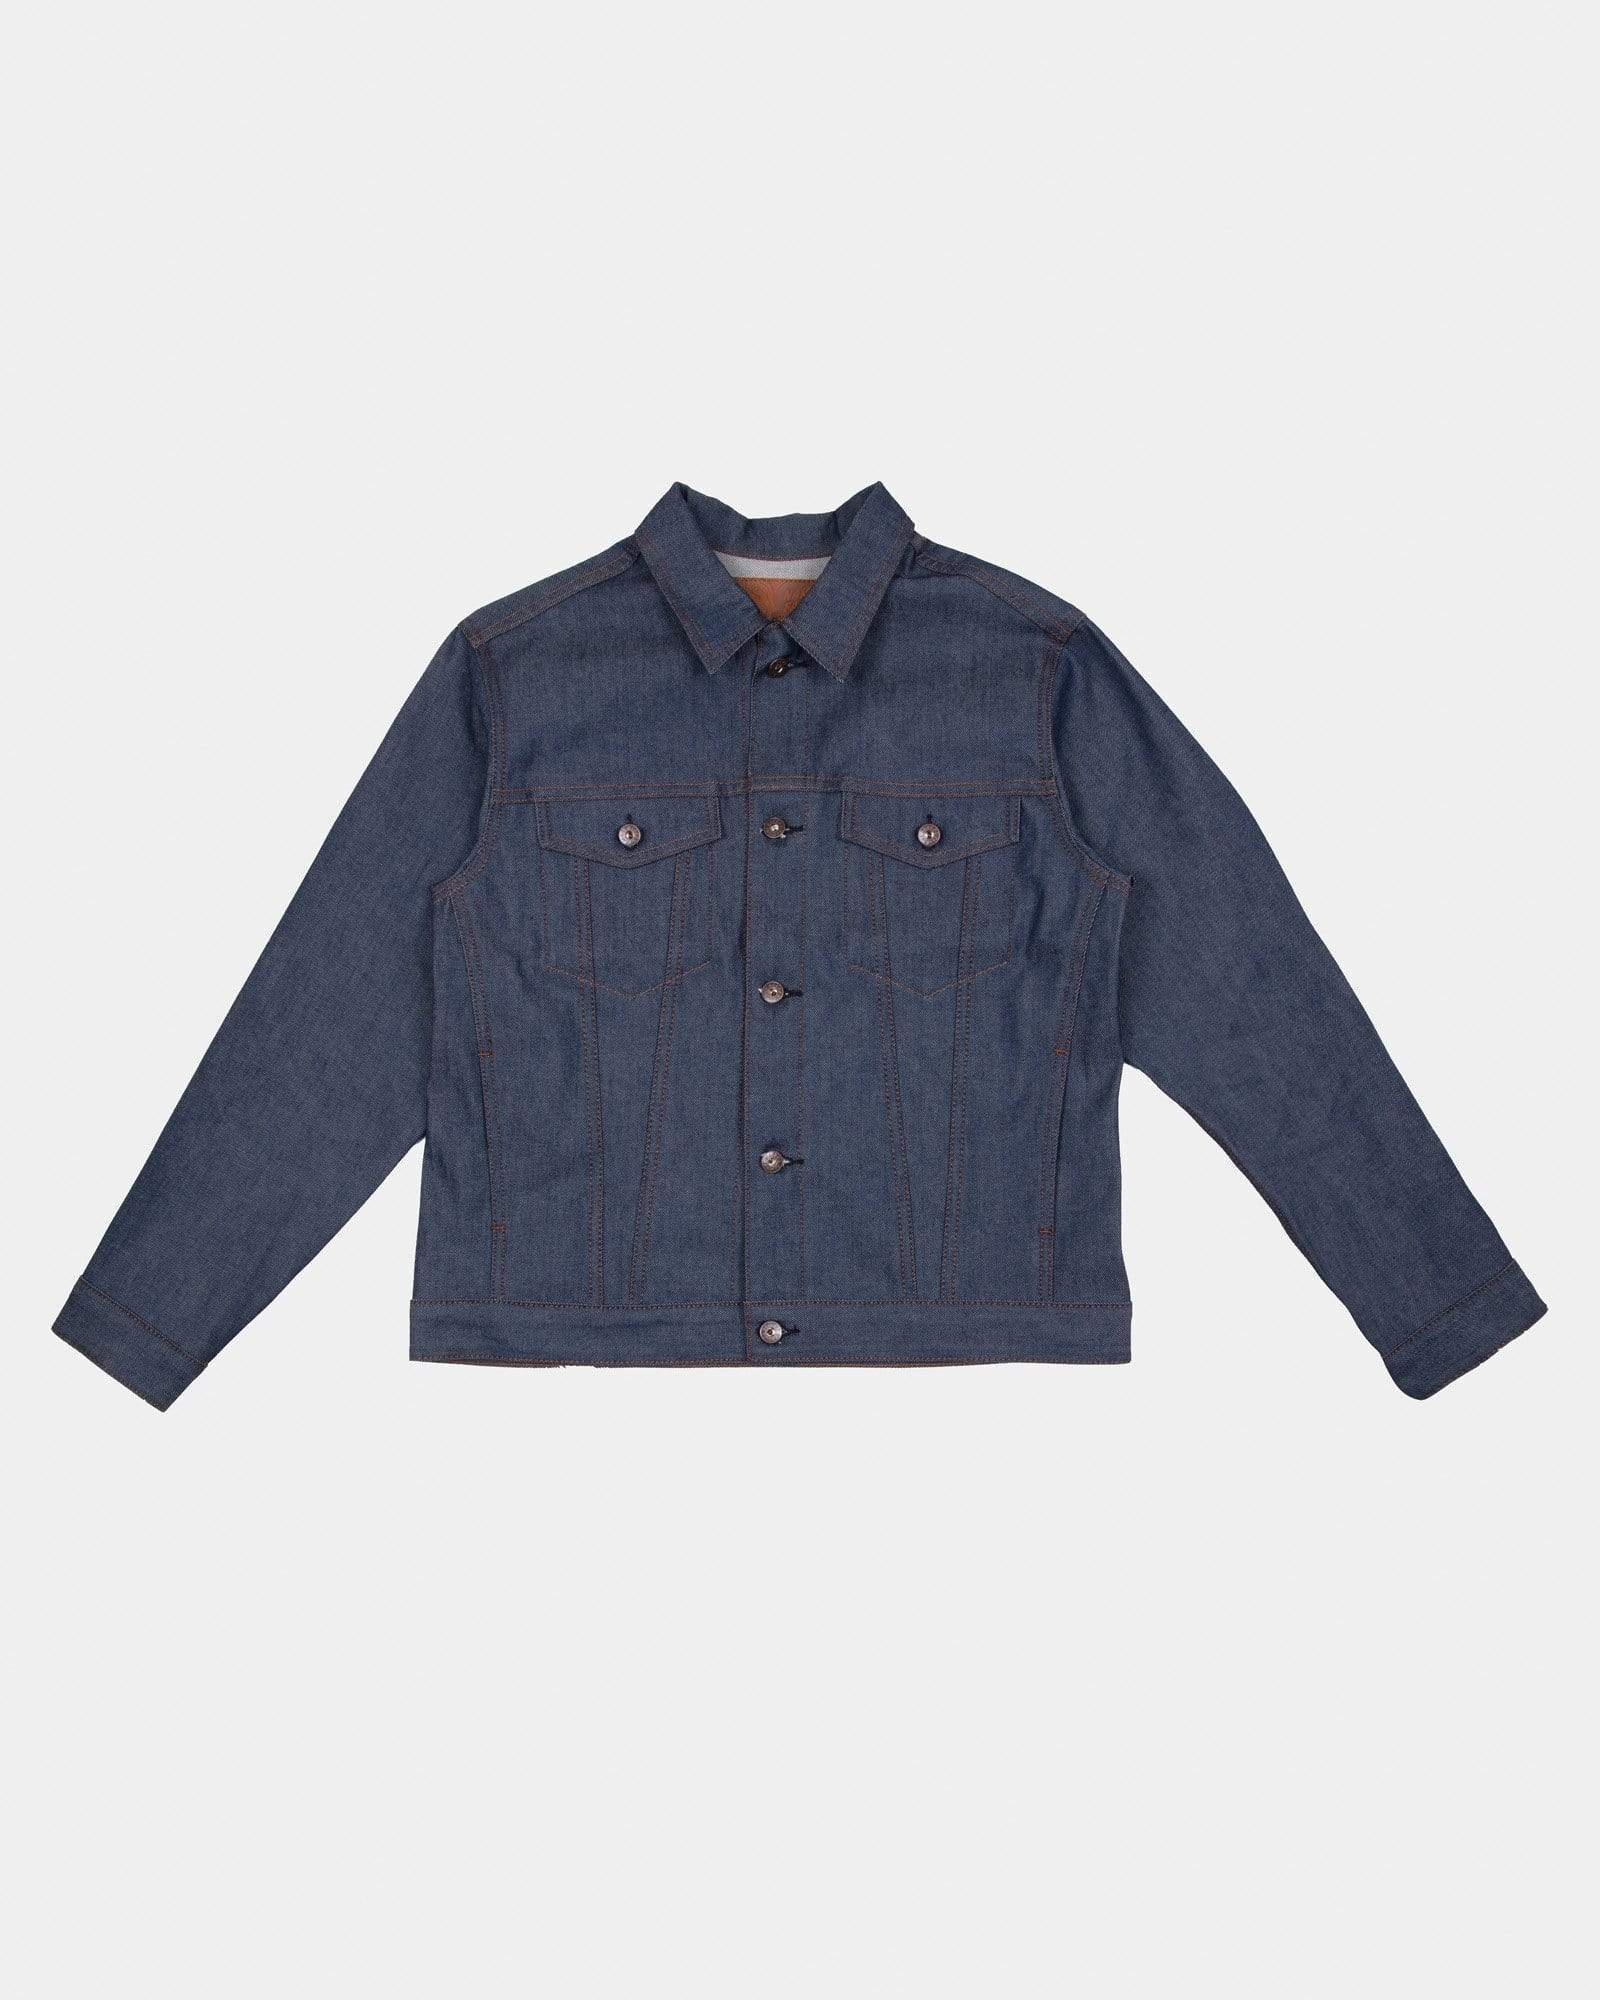 Naked & Famous Stealth Pocket Denim Jacket - Natural Indigo Selvedge M 164050164M 675270148990 Naked & Famous Denim Jackets & Coats